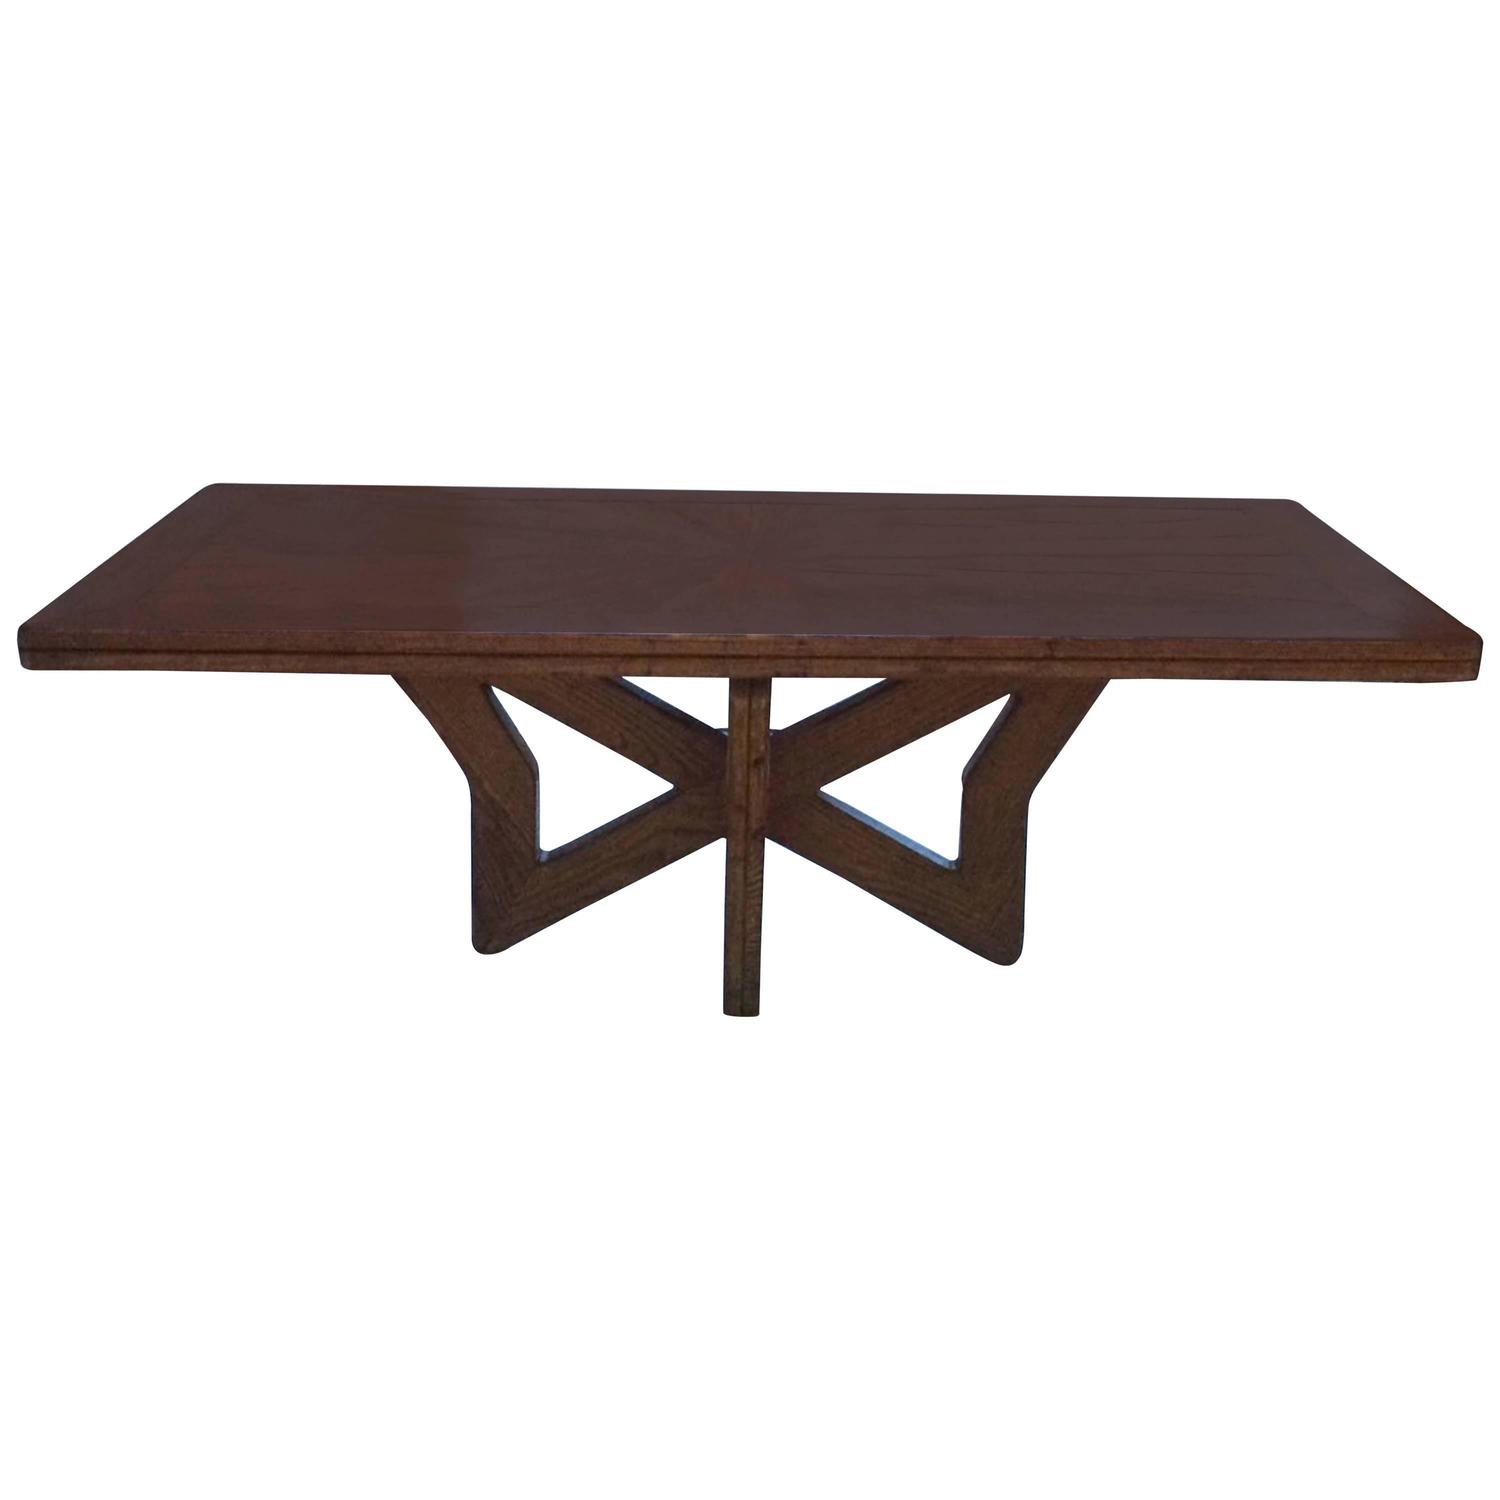 pieced wood top dining table spain 1950s at 1stdibs